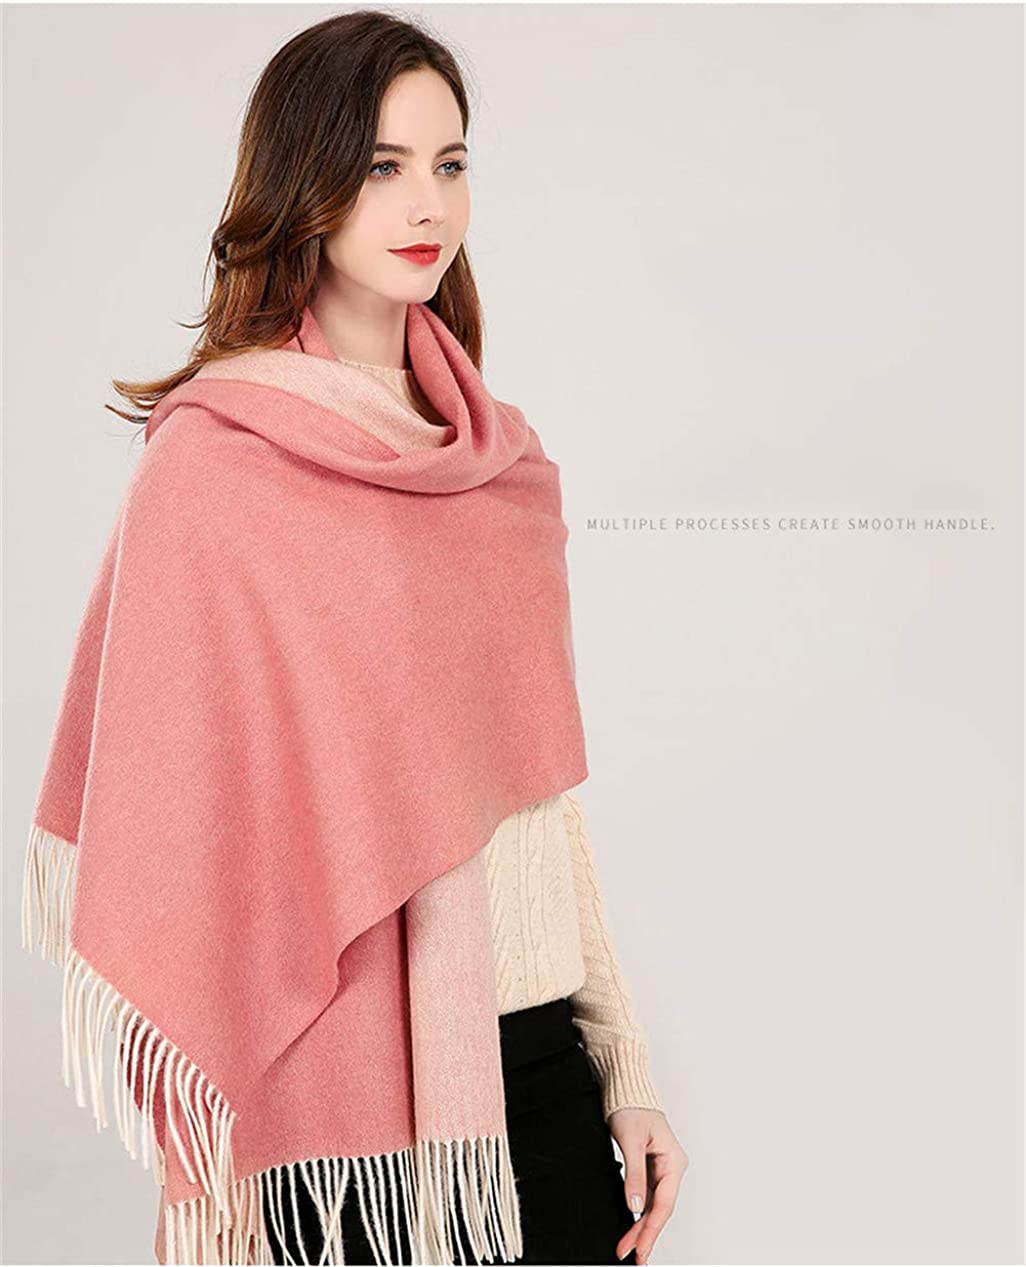 Winter Cashmere Wool Scarf Shawl Wrap for Women Long Large Warm Thick Reversible Scarves Various Colors